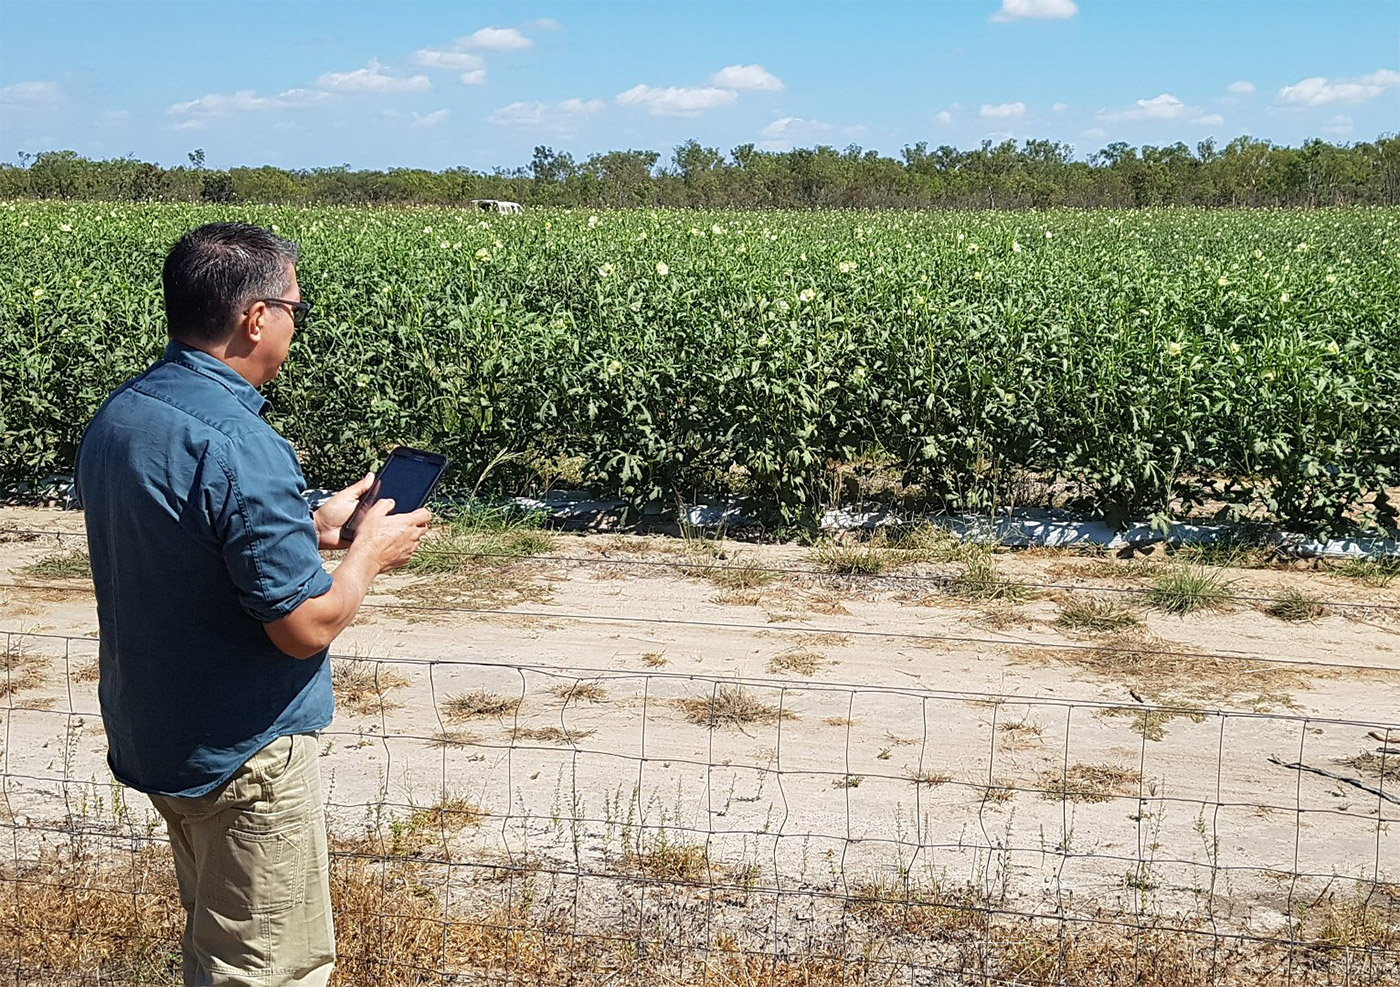 Man using a mobile device standing outside a crop